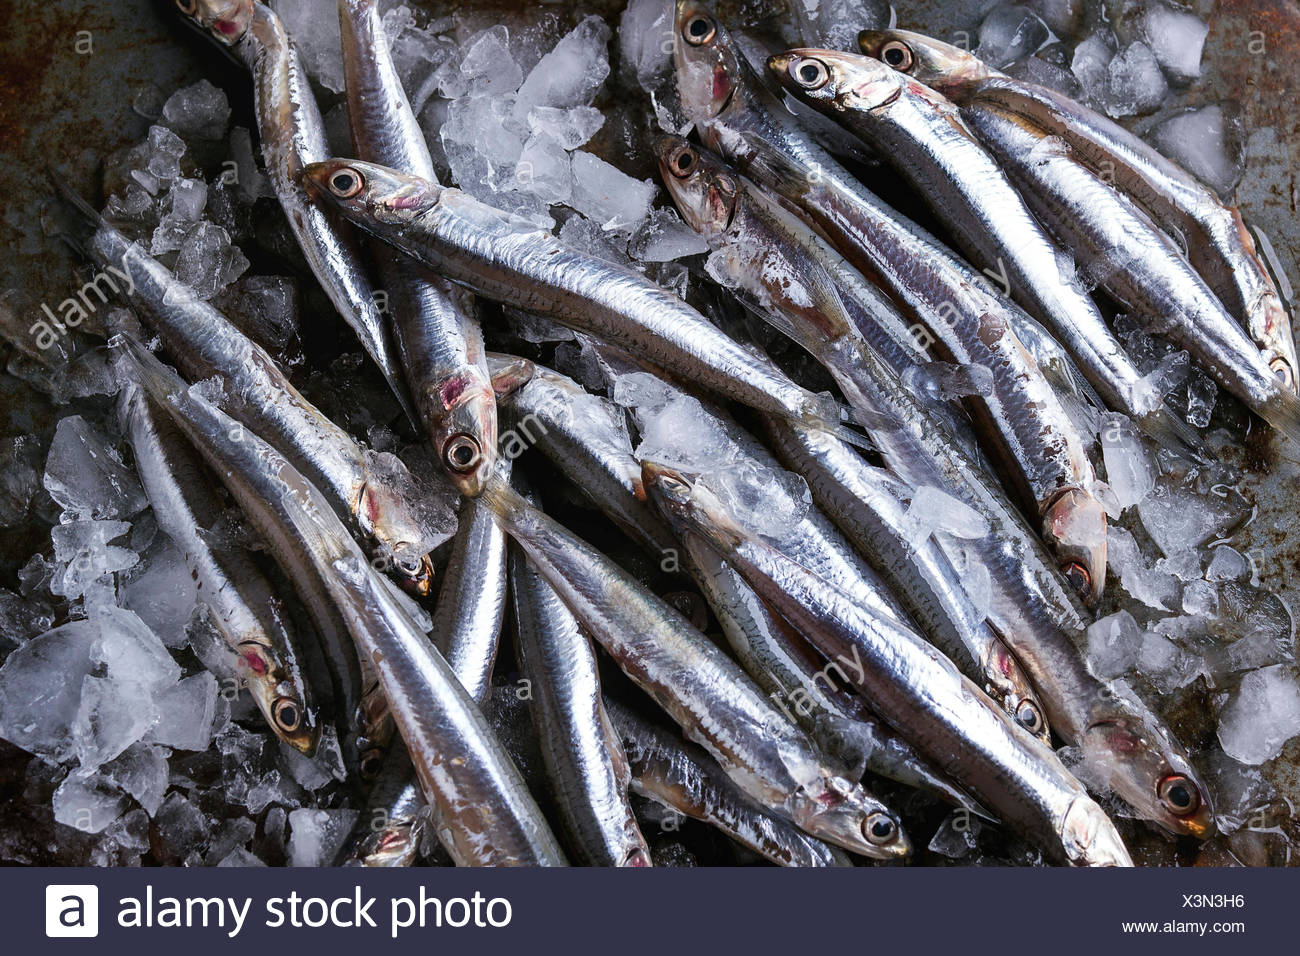 Lot of raw fresh anchovies fishes on crushed ice over old dark metal background. Top view. Sea food background theme. - Stock Image